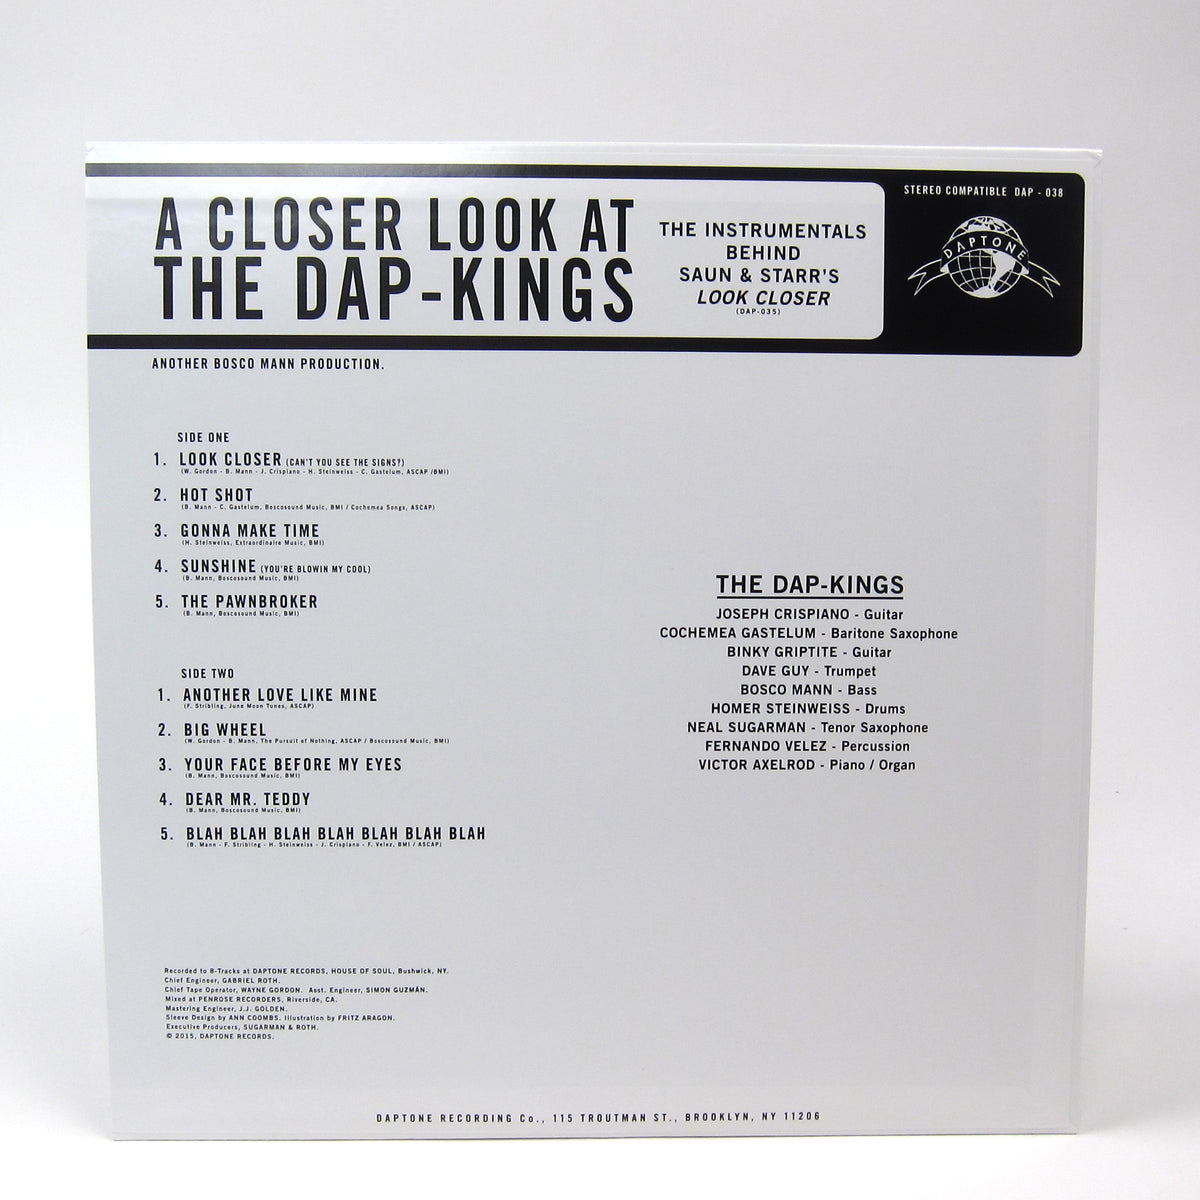 The Dap-Kings: A Closer Look At The Dap-Kings - The Instrumentals for Saun & Starr's Look Closer (Colored Vinyl) Vinyl LP (Record Store Day)